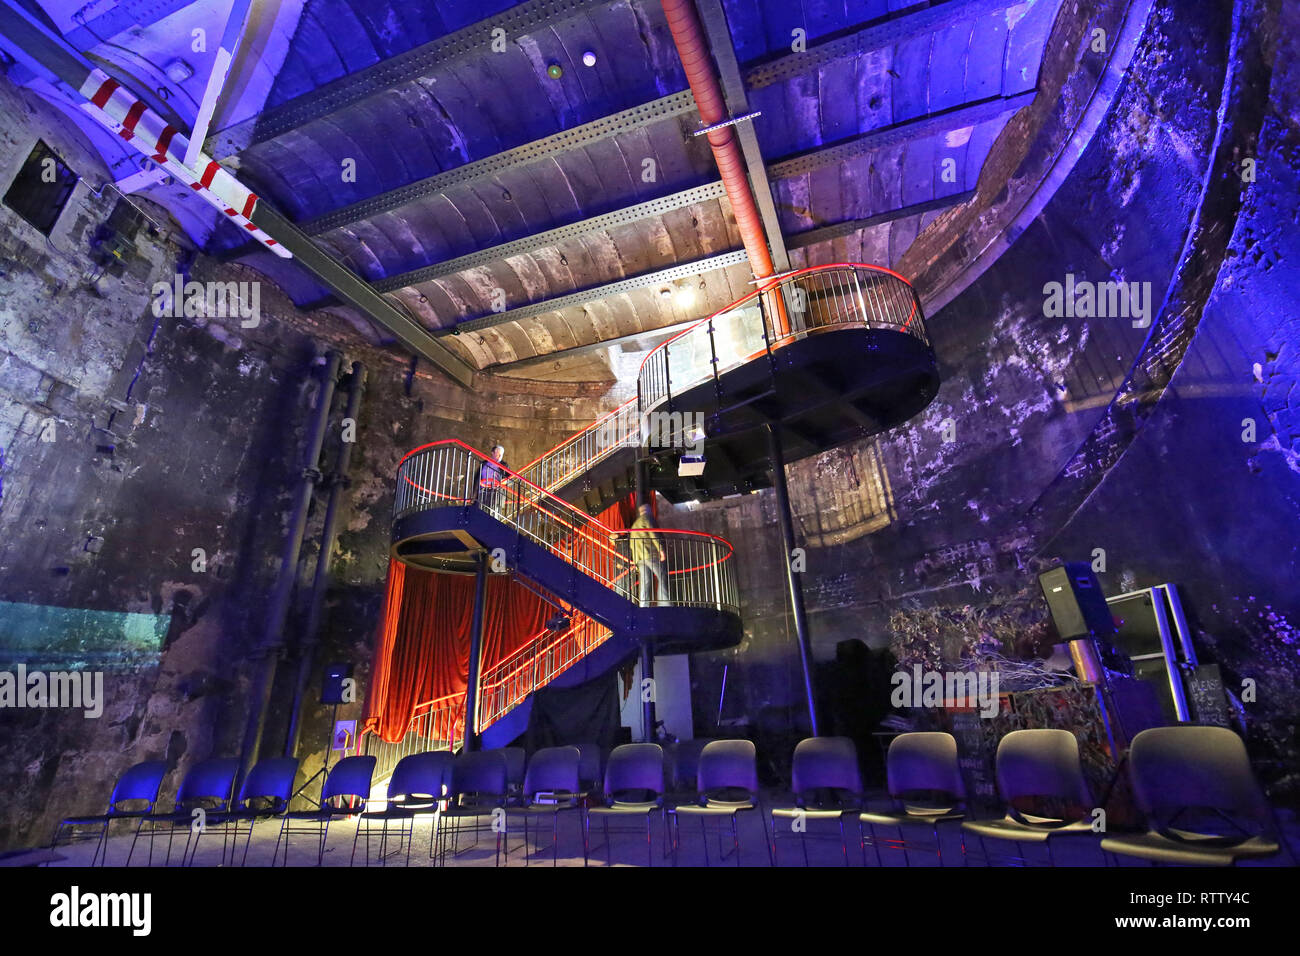 Interior of the Brunel engineering museum in Rotherhithe, London, UK. Built within the original access shaft to his Victorian River Thames  tunnel. - Stock Image